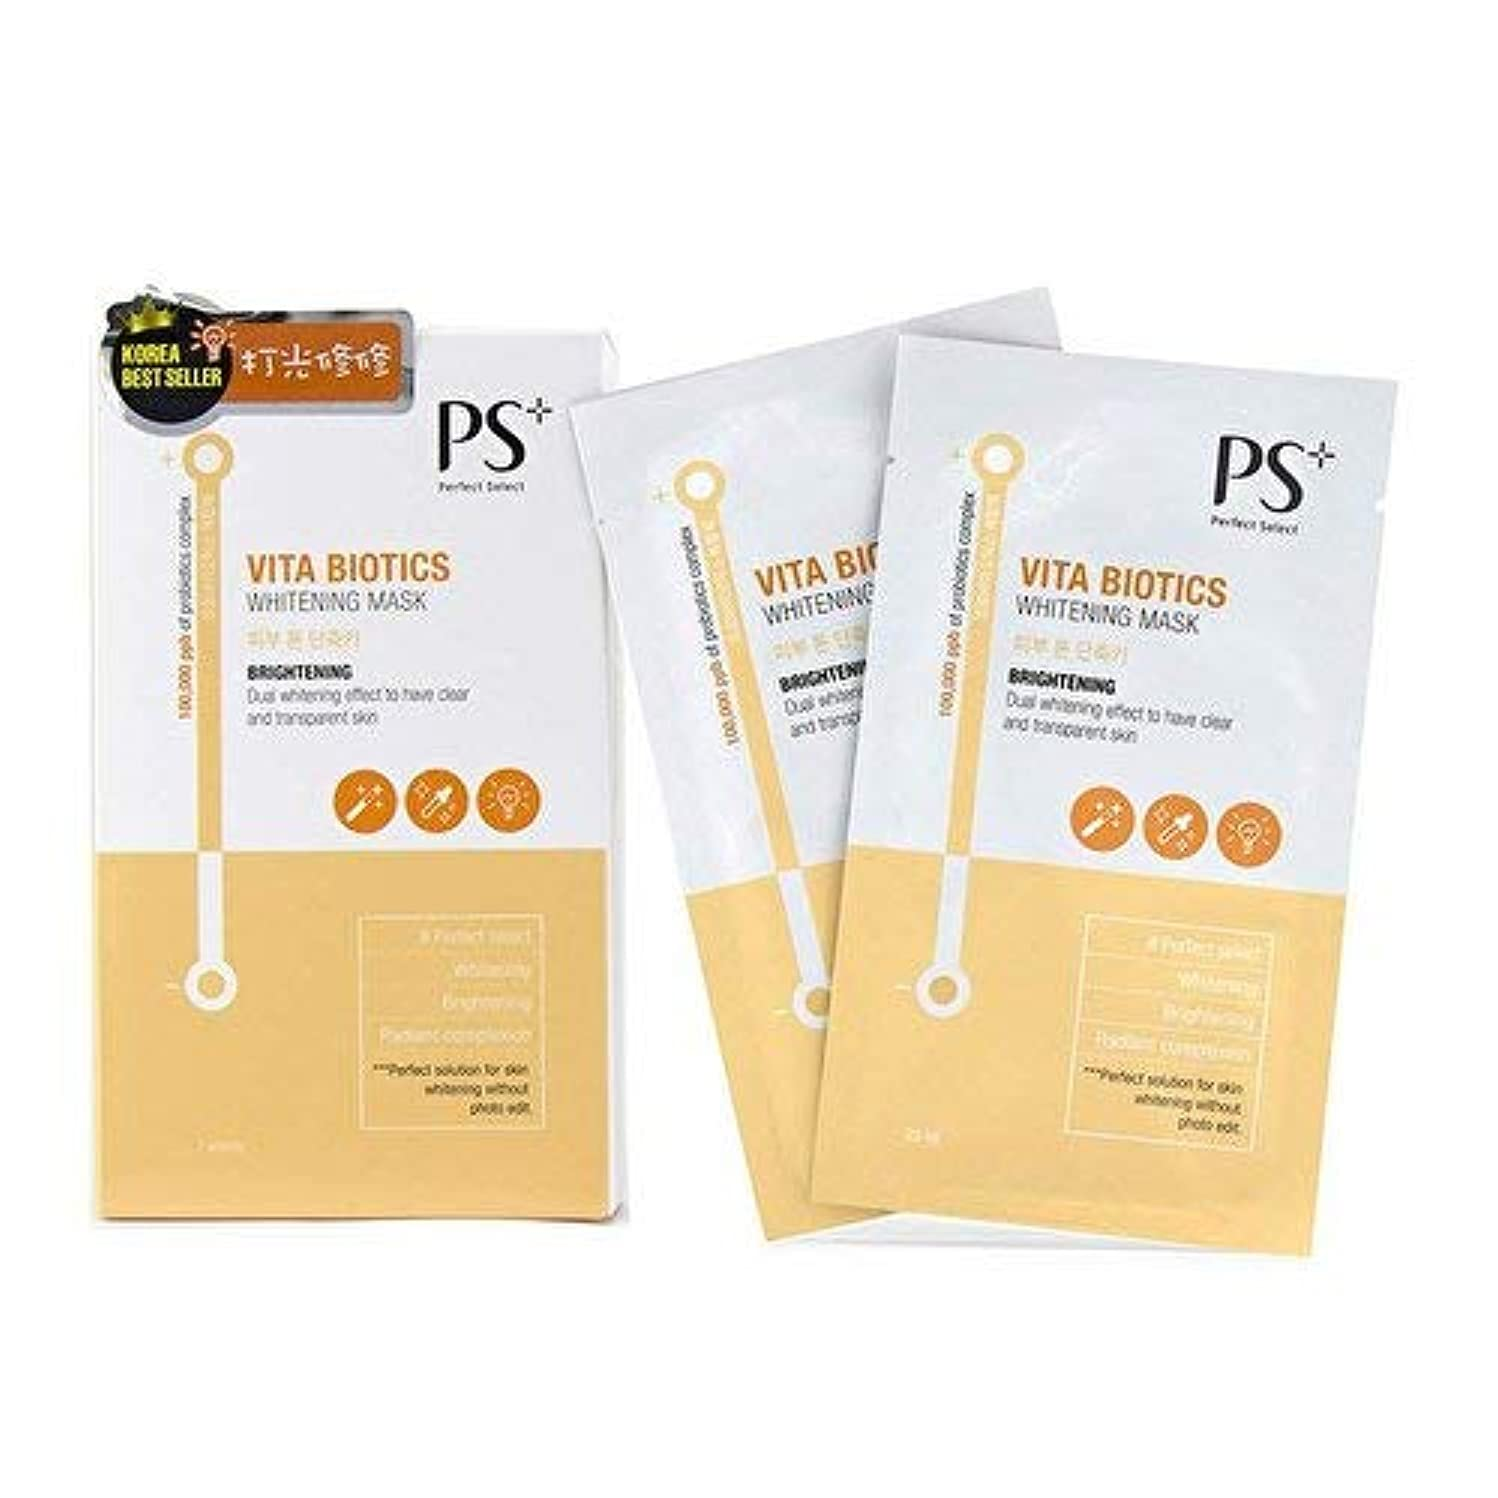 フェロー諸島男やもめ大邸宅PS Perfect Select Vita Biotics Whitening Mask - Brightening 7pcs並行輸入品